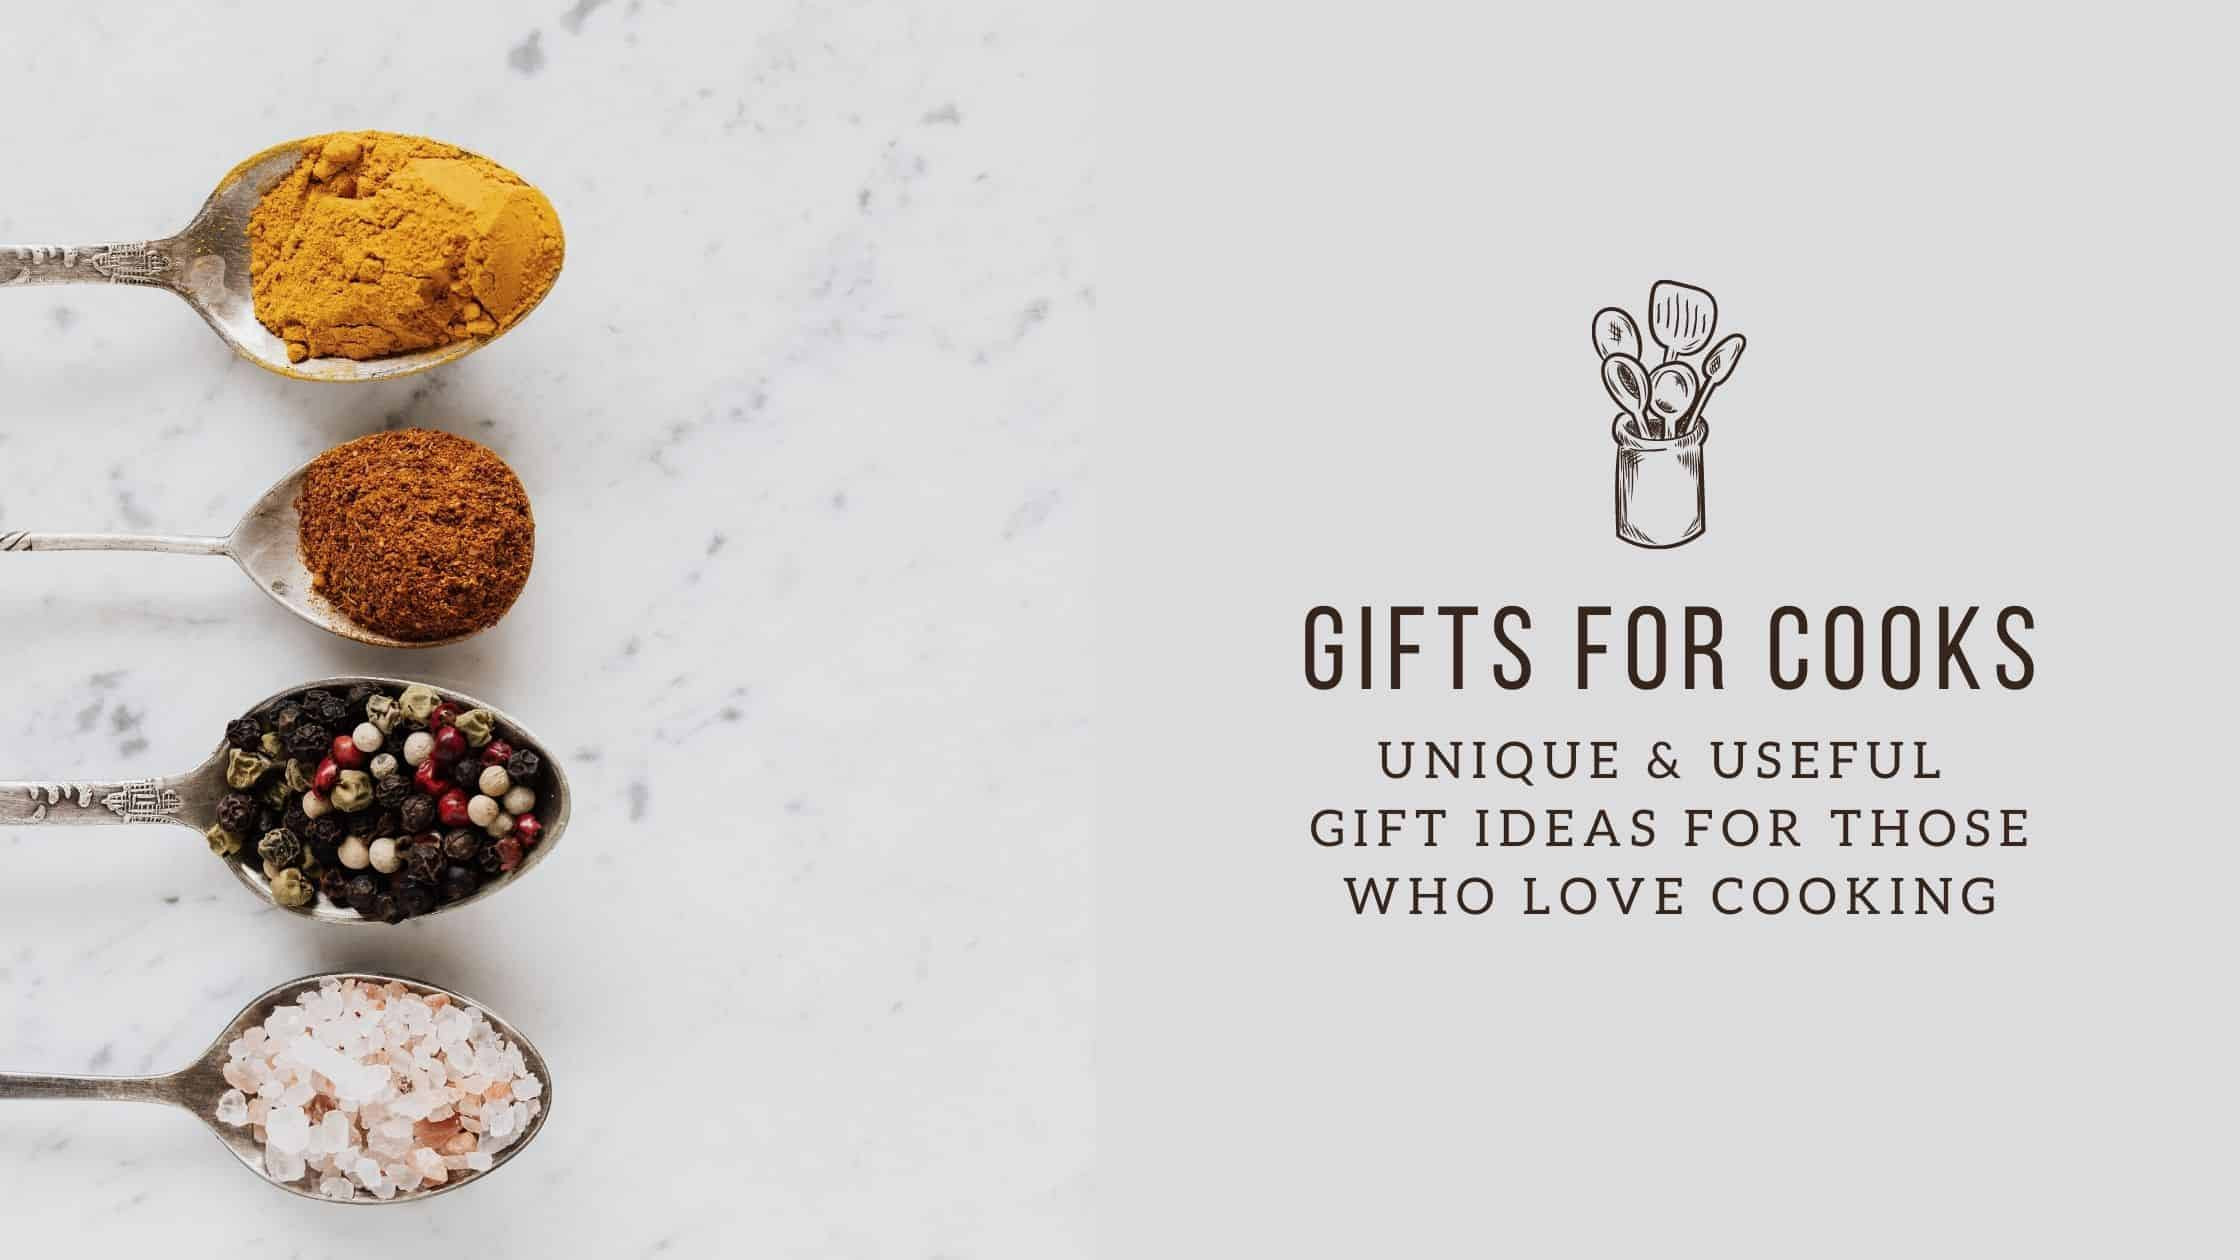 45+ Best Gifts for Cooks and Home Chefs (2021)